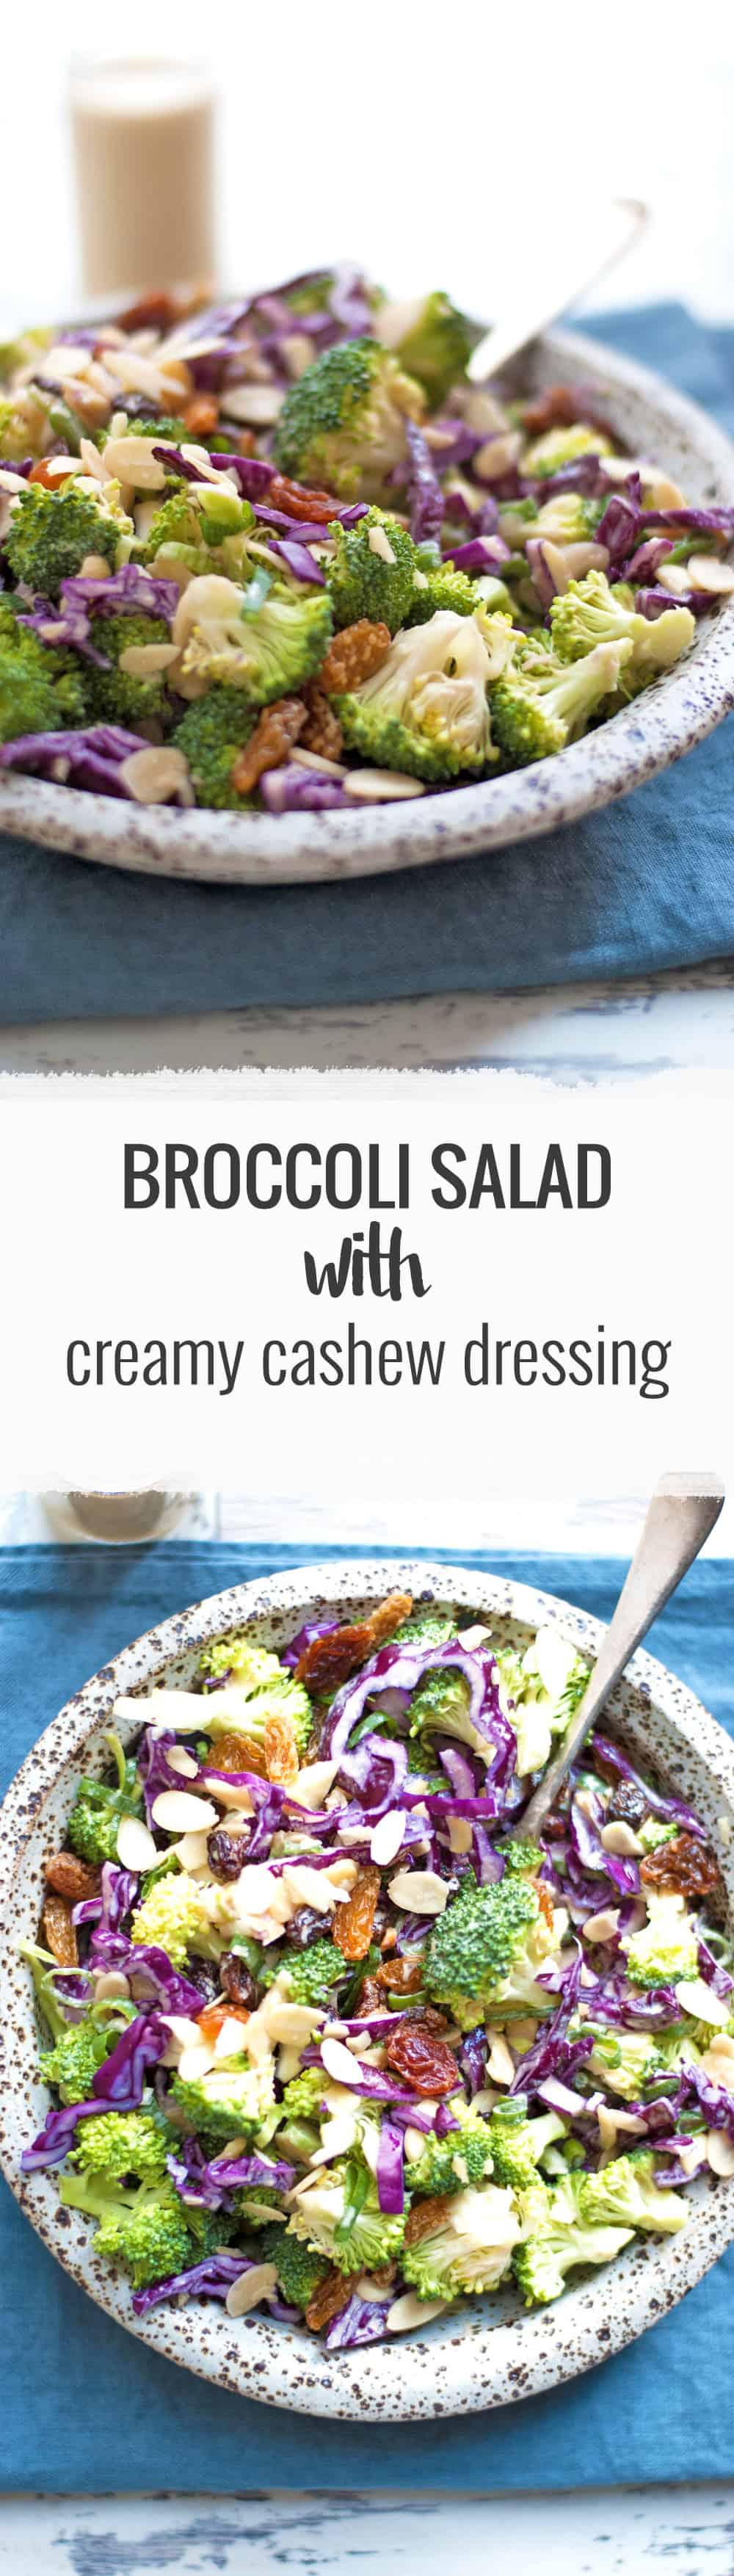 Super crunchy, fresh broccoli salad with creamy cashew dressing. Packed with all the good stuff, ready in 15 minutes! | via @annabanana.co